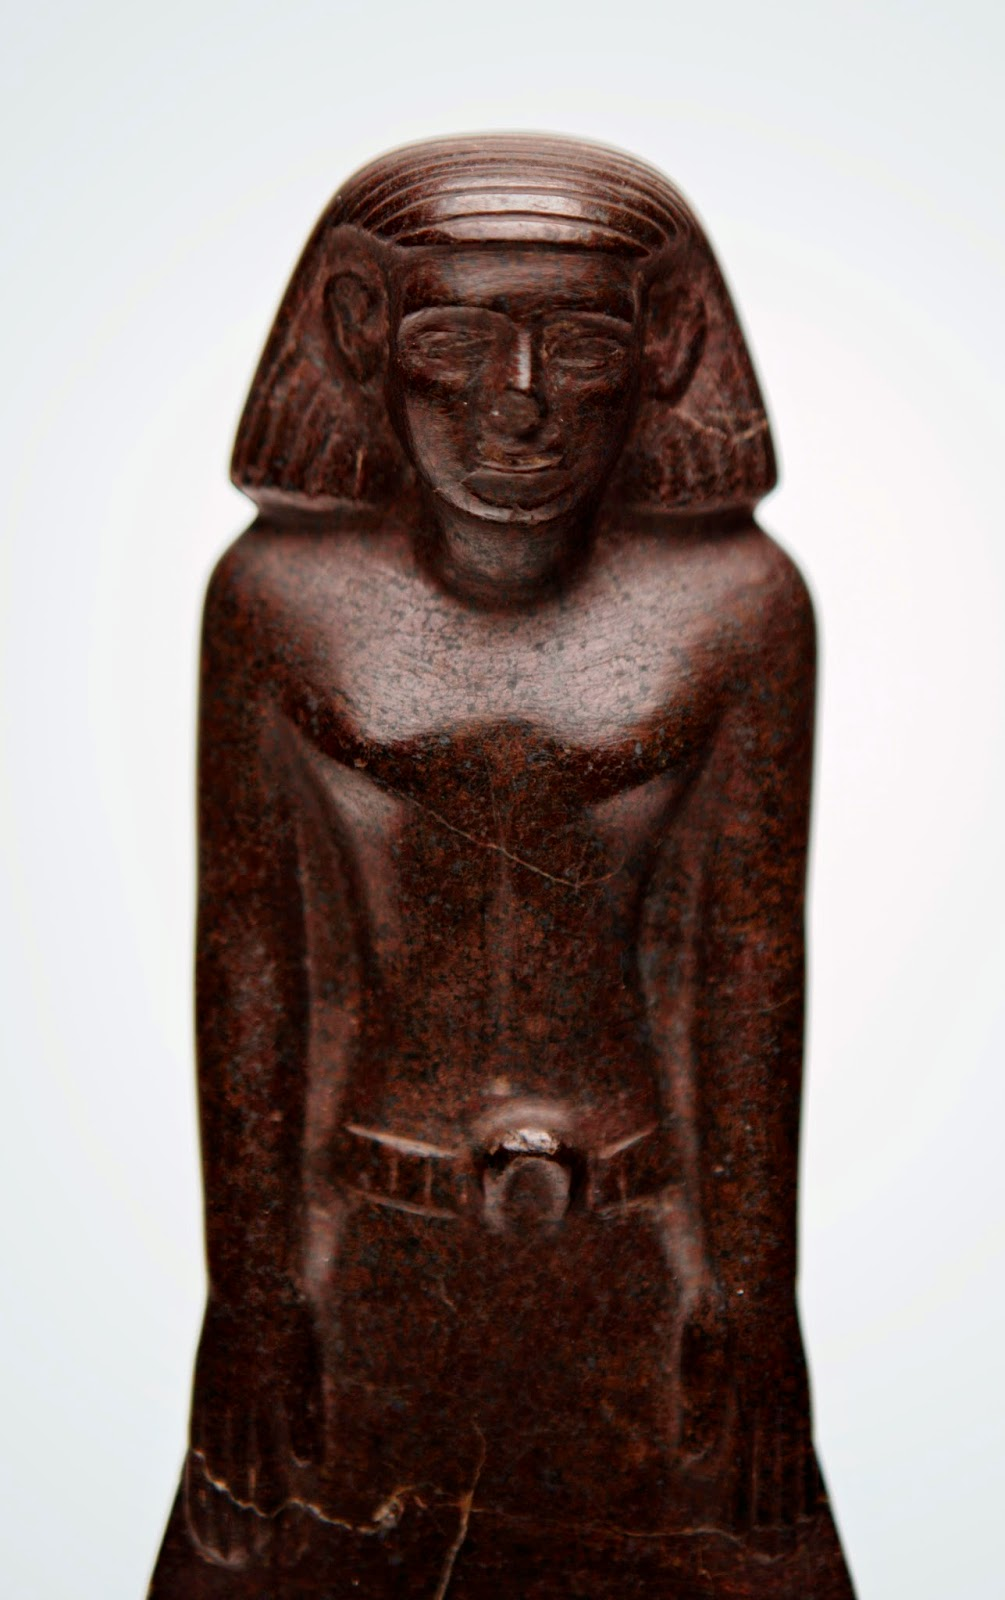 A close-up view of the torso and face of an Egyptian statue made in the likeness of a man.